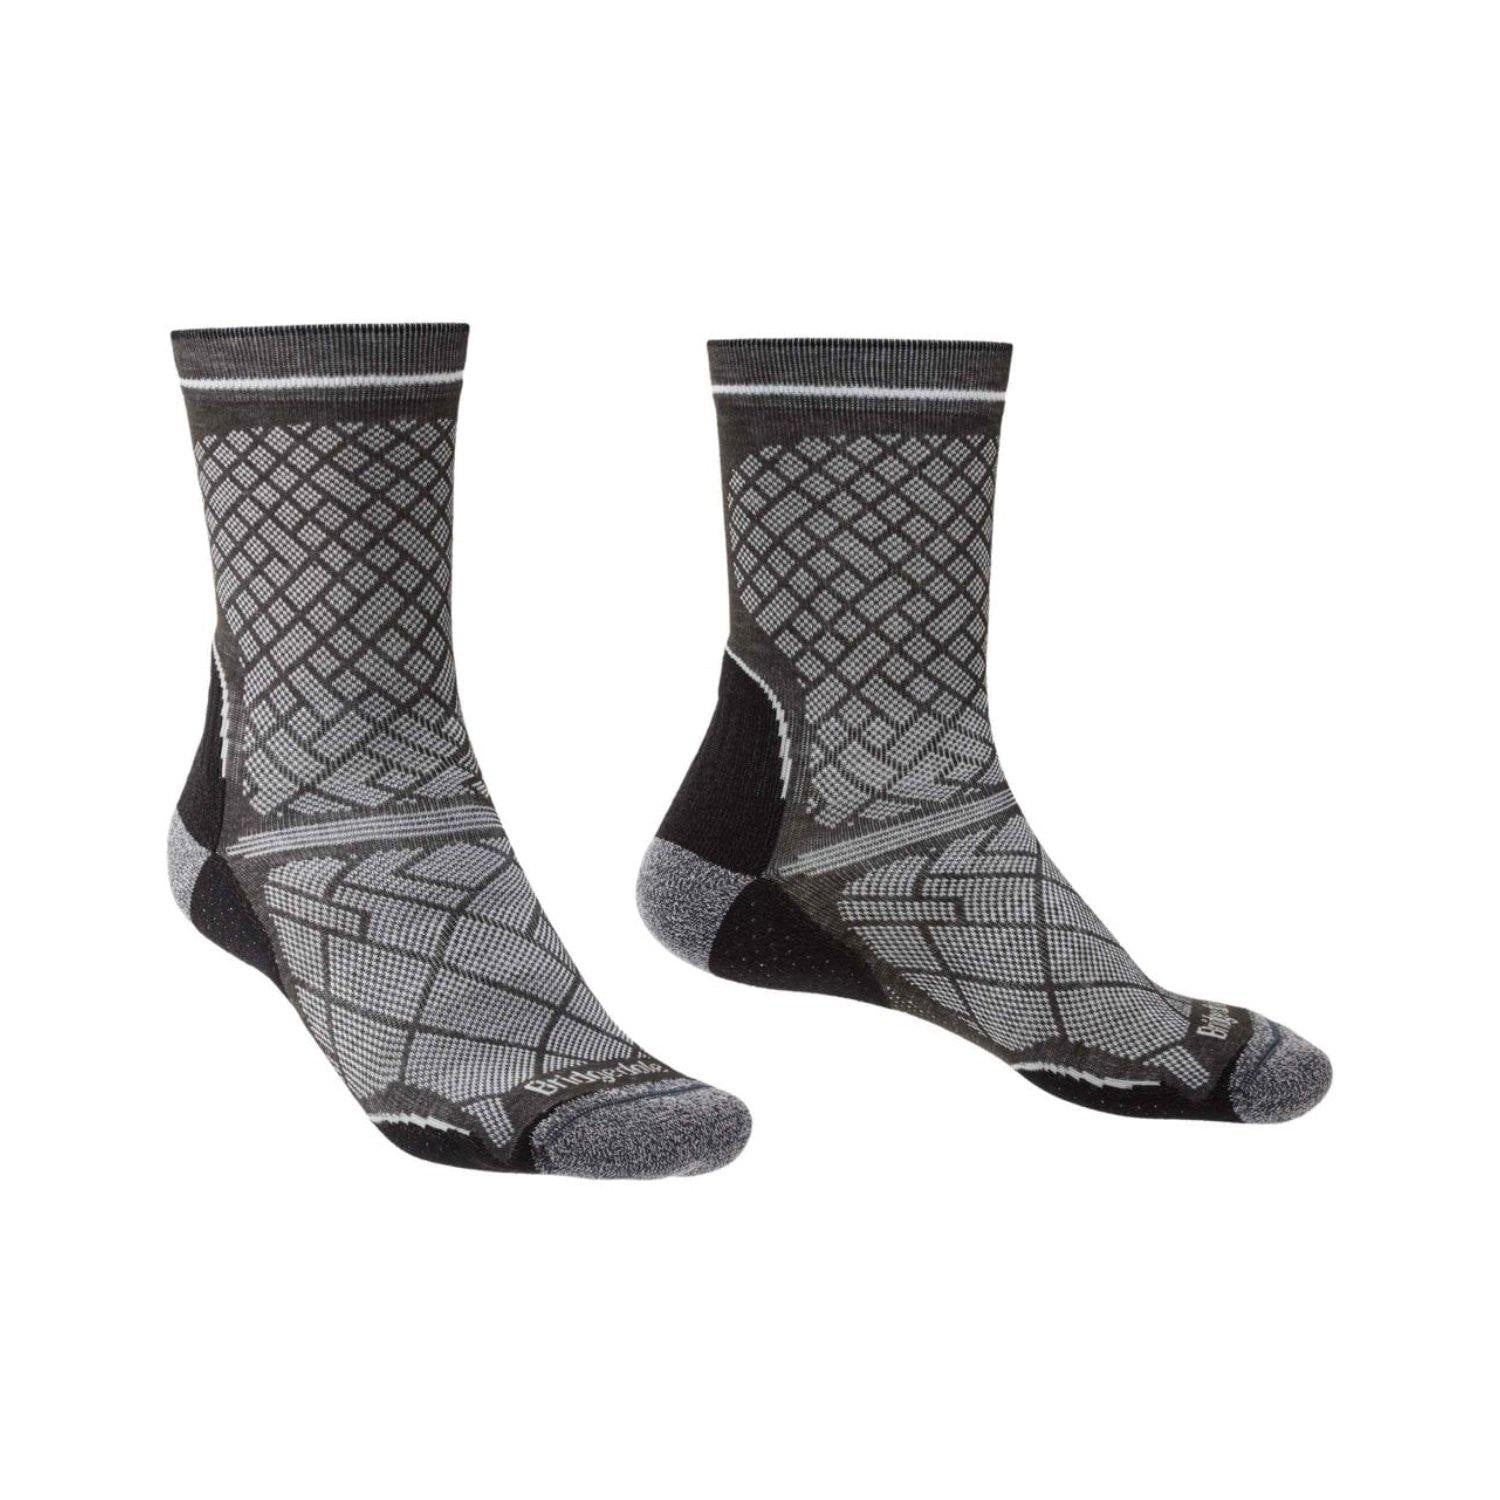 Bridgedale Men's COOLMAX Performance Ultra Light HIKE Socks